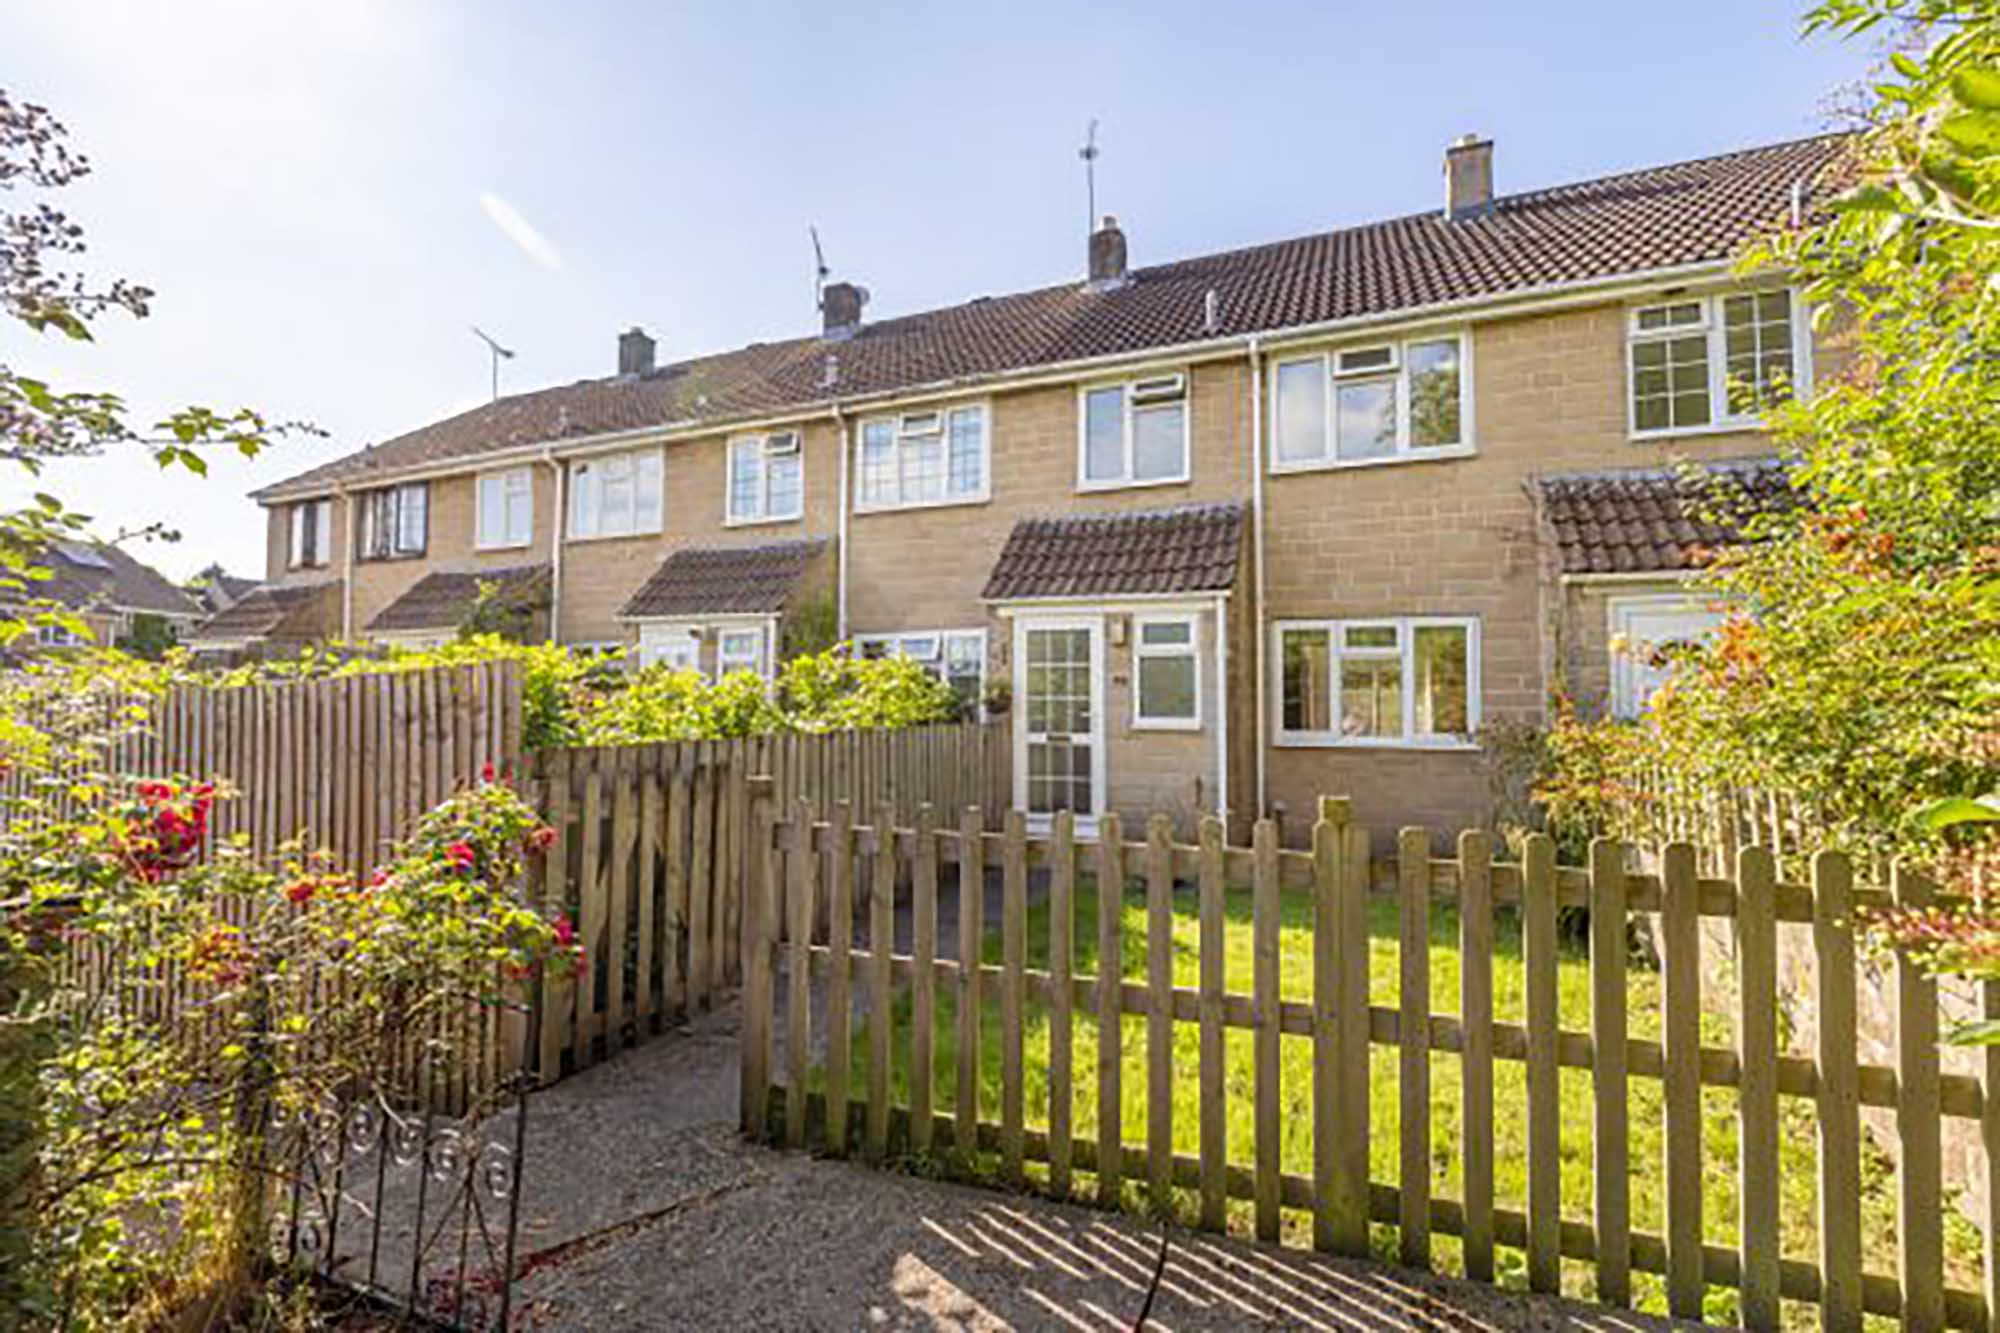 3 bed home, just 5 minutes or so from the High Street.